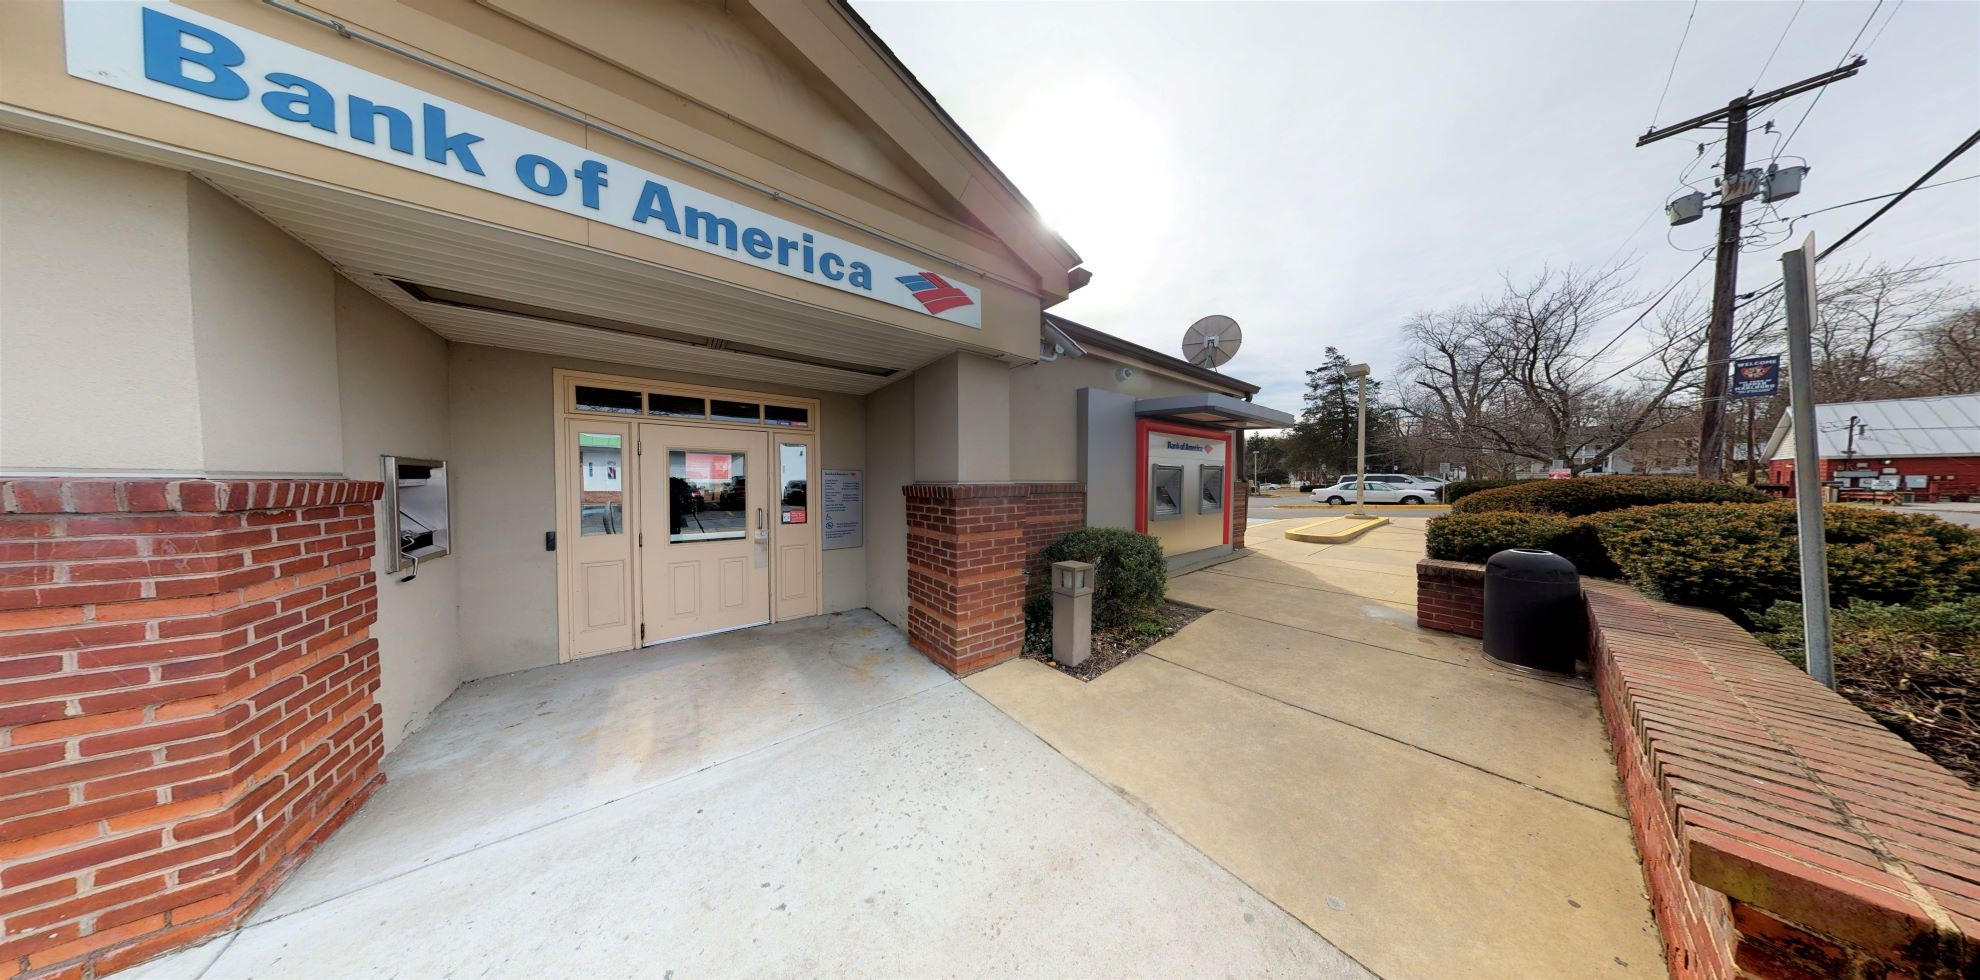 Bank of America financial center with walk-up ATM   14601 Church St, Upper Marlboro, MD 20772